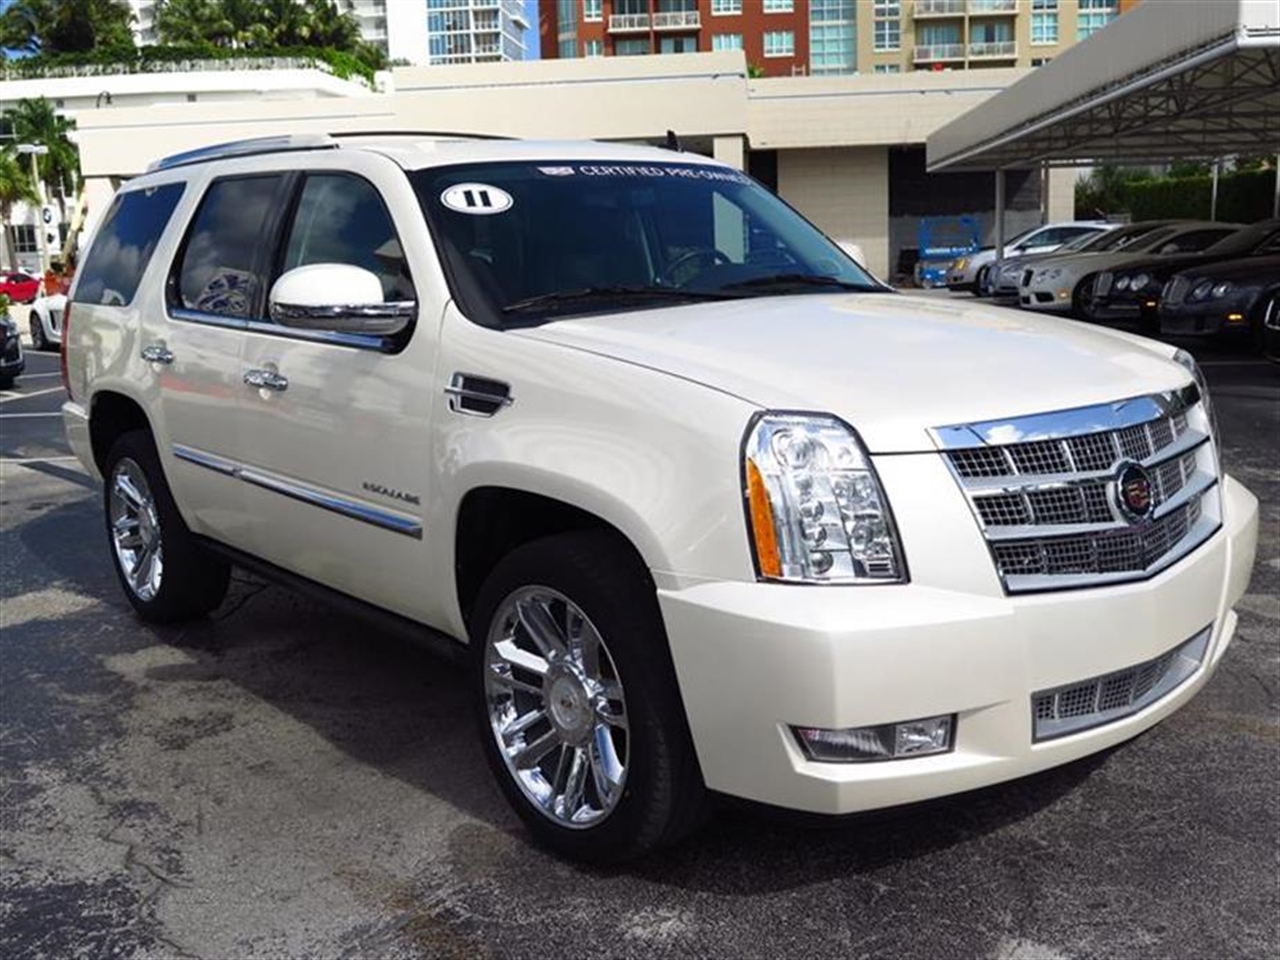 2011 CADILLAC ESCALADE 2WD 4dr Platinum Edition 29914 miles Climate control rear air conditioning